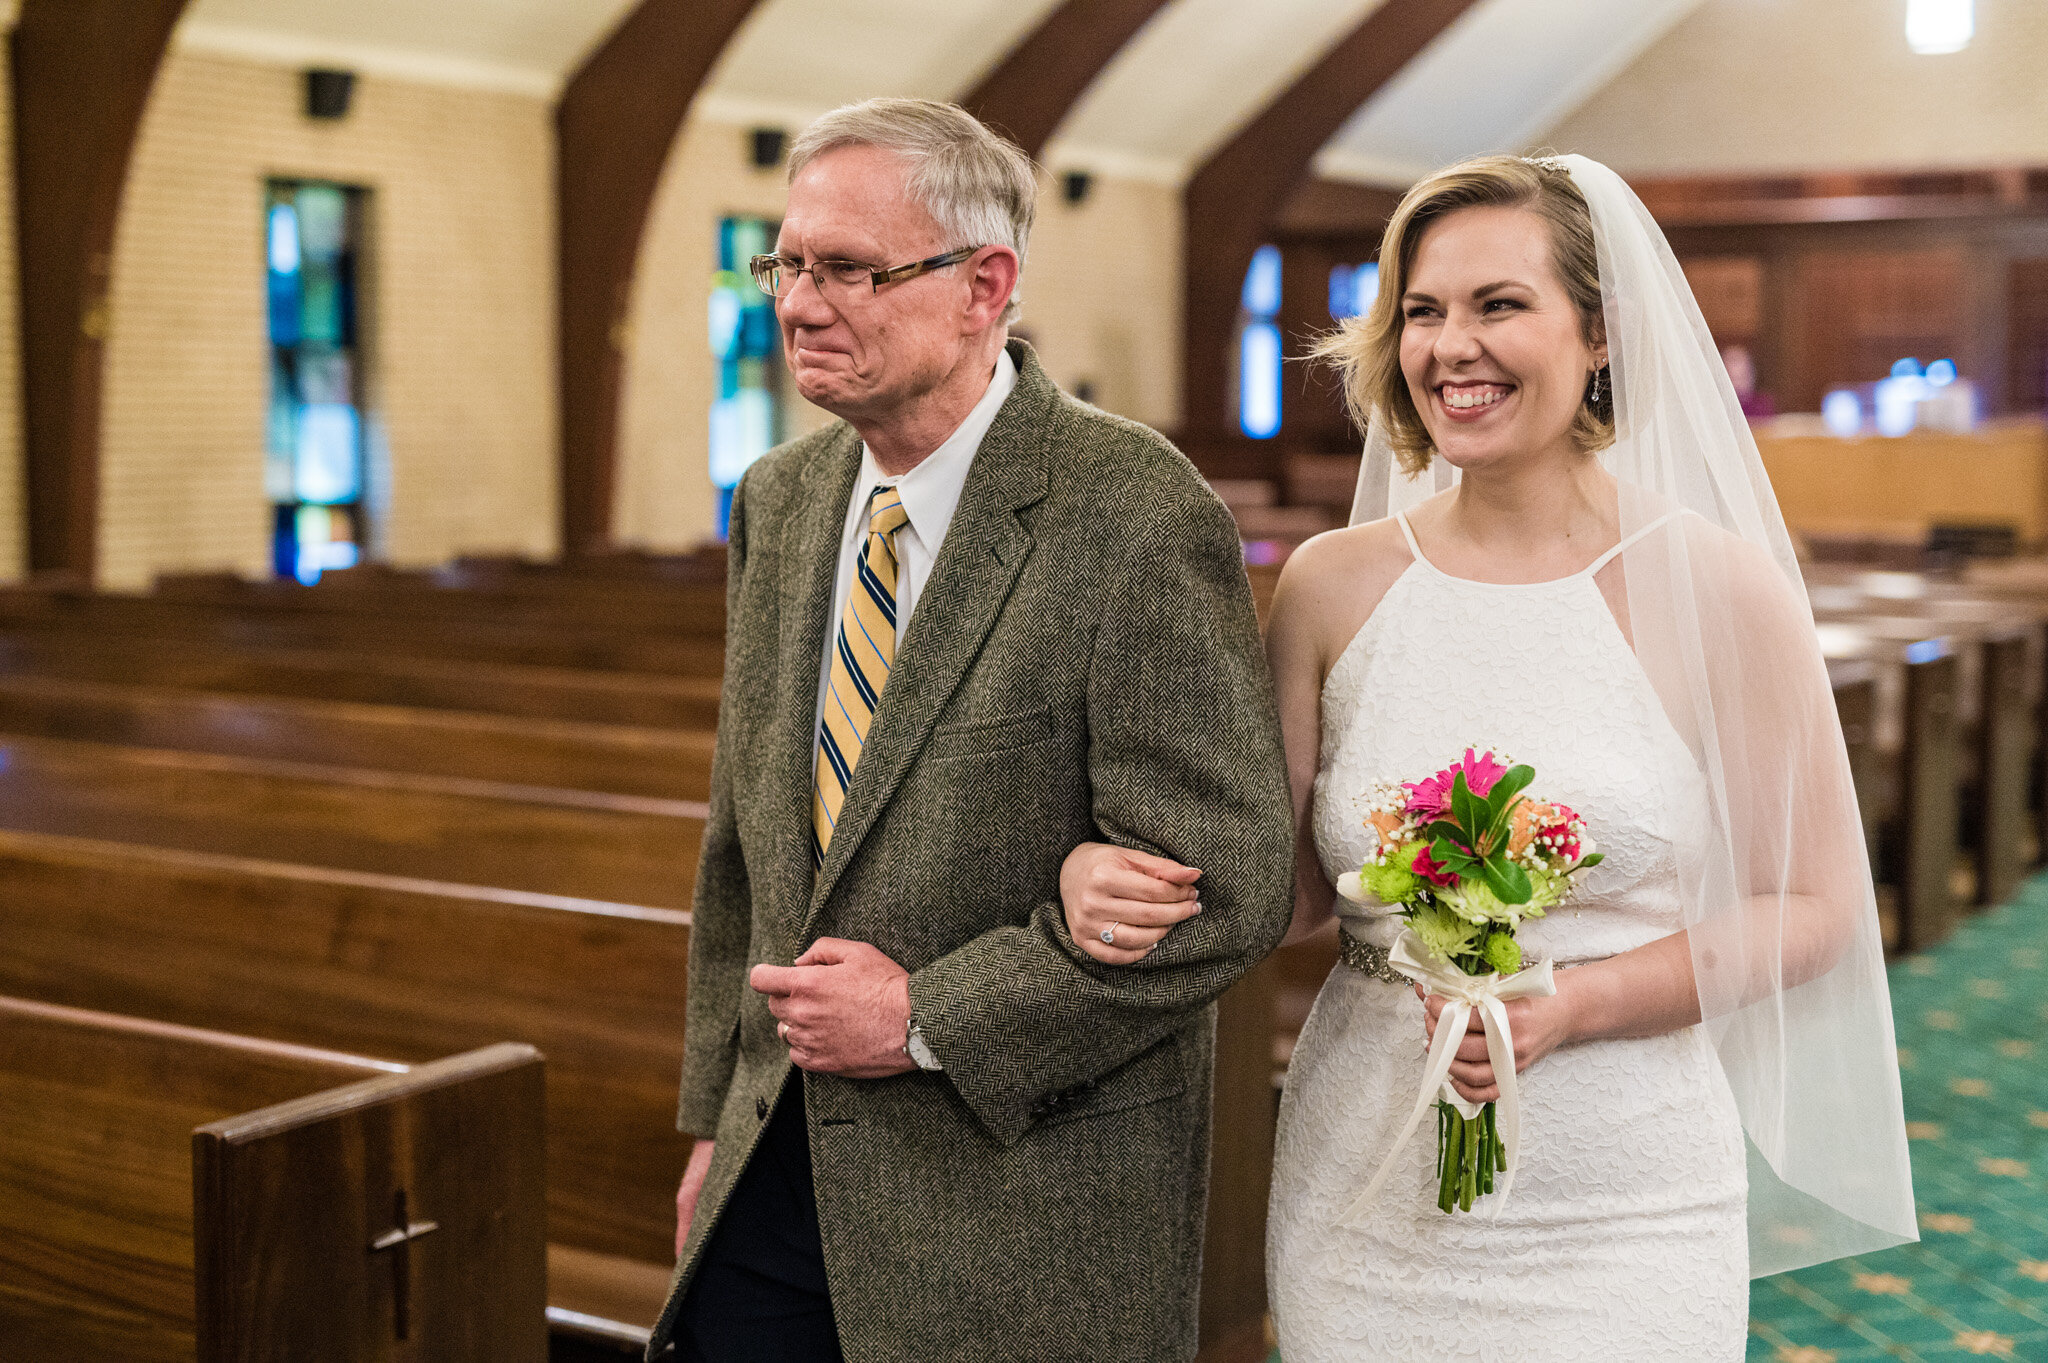 Dad walks his daughter down the aisle